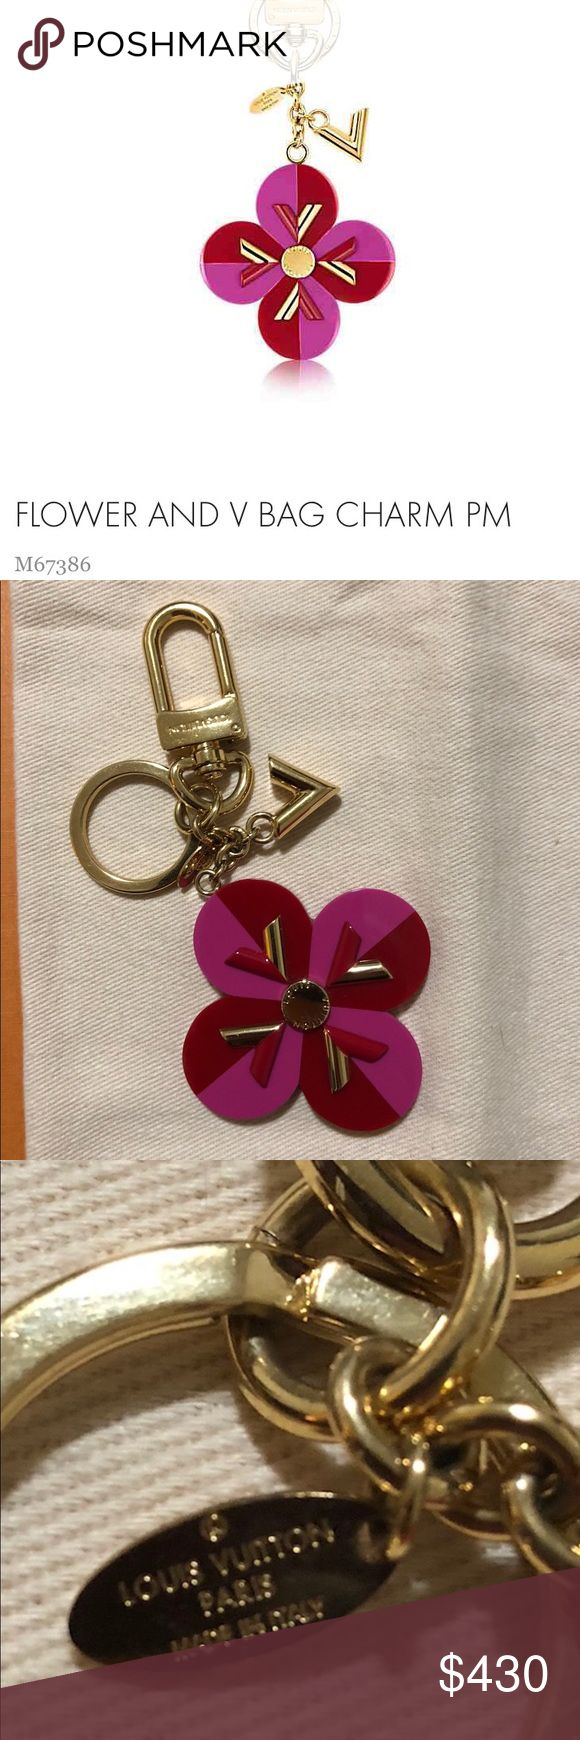 Louis Vuitton Flower and V Bag Charm 💯Authentic A colorful charm featuring the brands iconic monogram flower and graphic V.  This item is no longer available on the Louis Vuitton website. This charm has been used occasionally and has some superficial hairline scratches shown in photo they are not noticeable in person when using the charm. Louis Vuitton Accessories Key & Card Holders